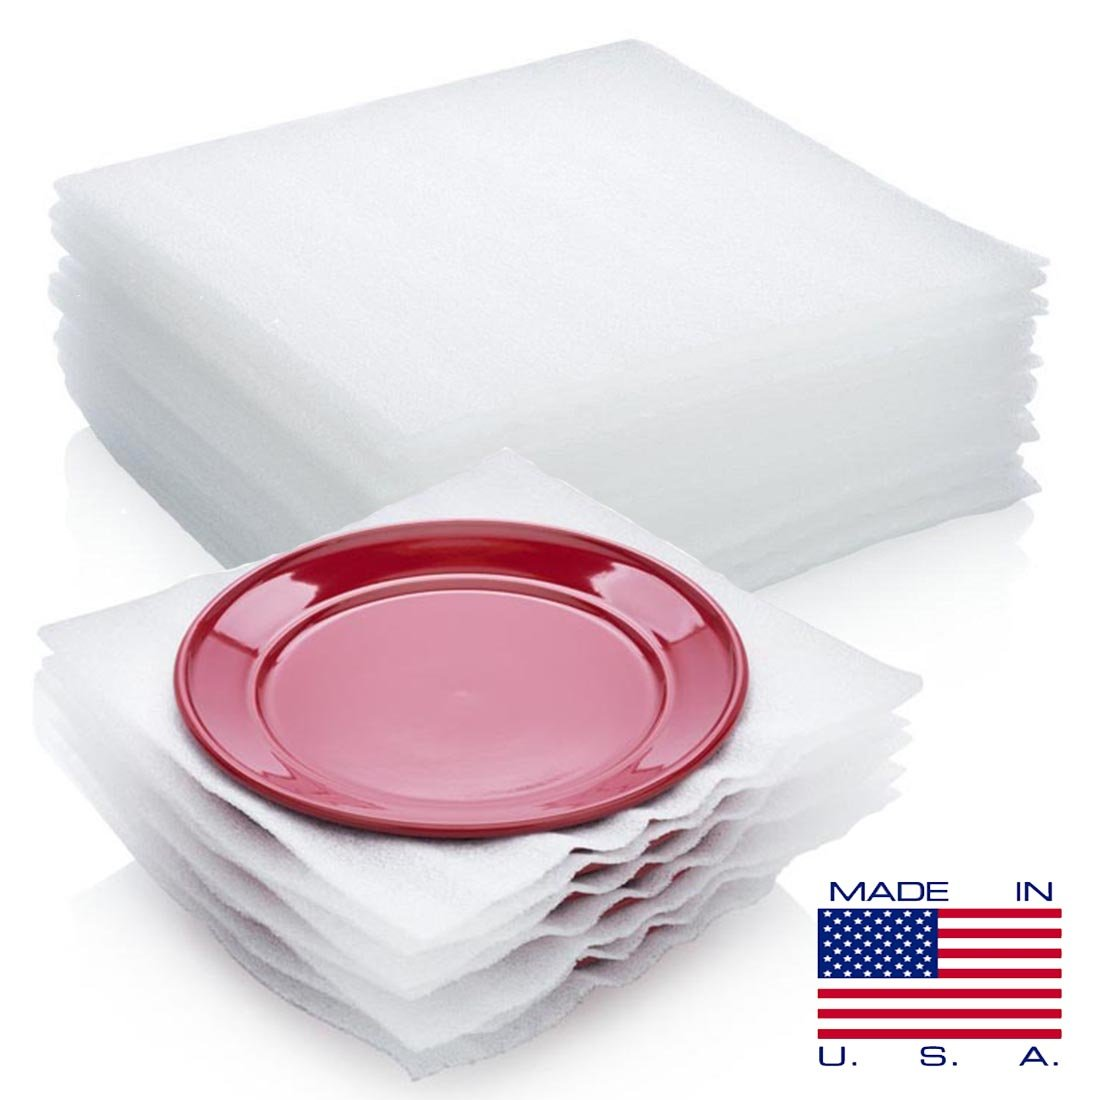 """50-Count Packing Supplies Cushion Foam Sheets Safely Wrap to Protect Dishes China Glasses Fragile Items for Moving 12"""" x 12"""" by DONCHEFF"""